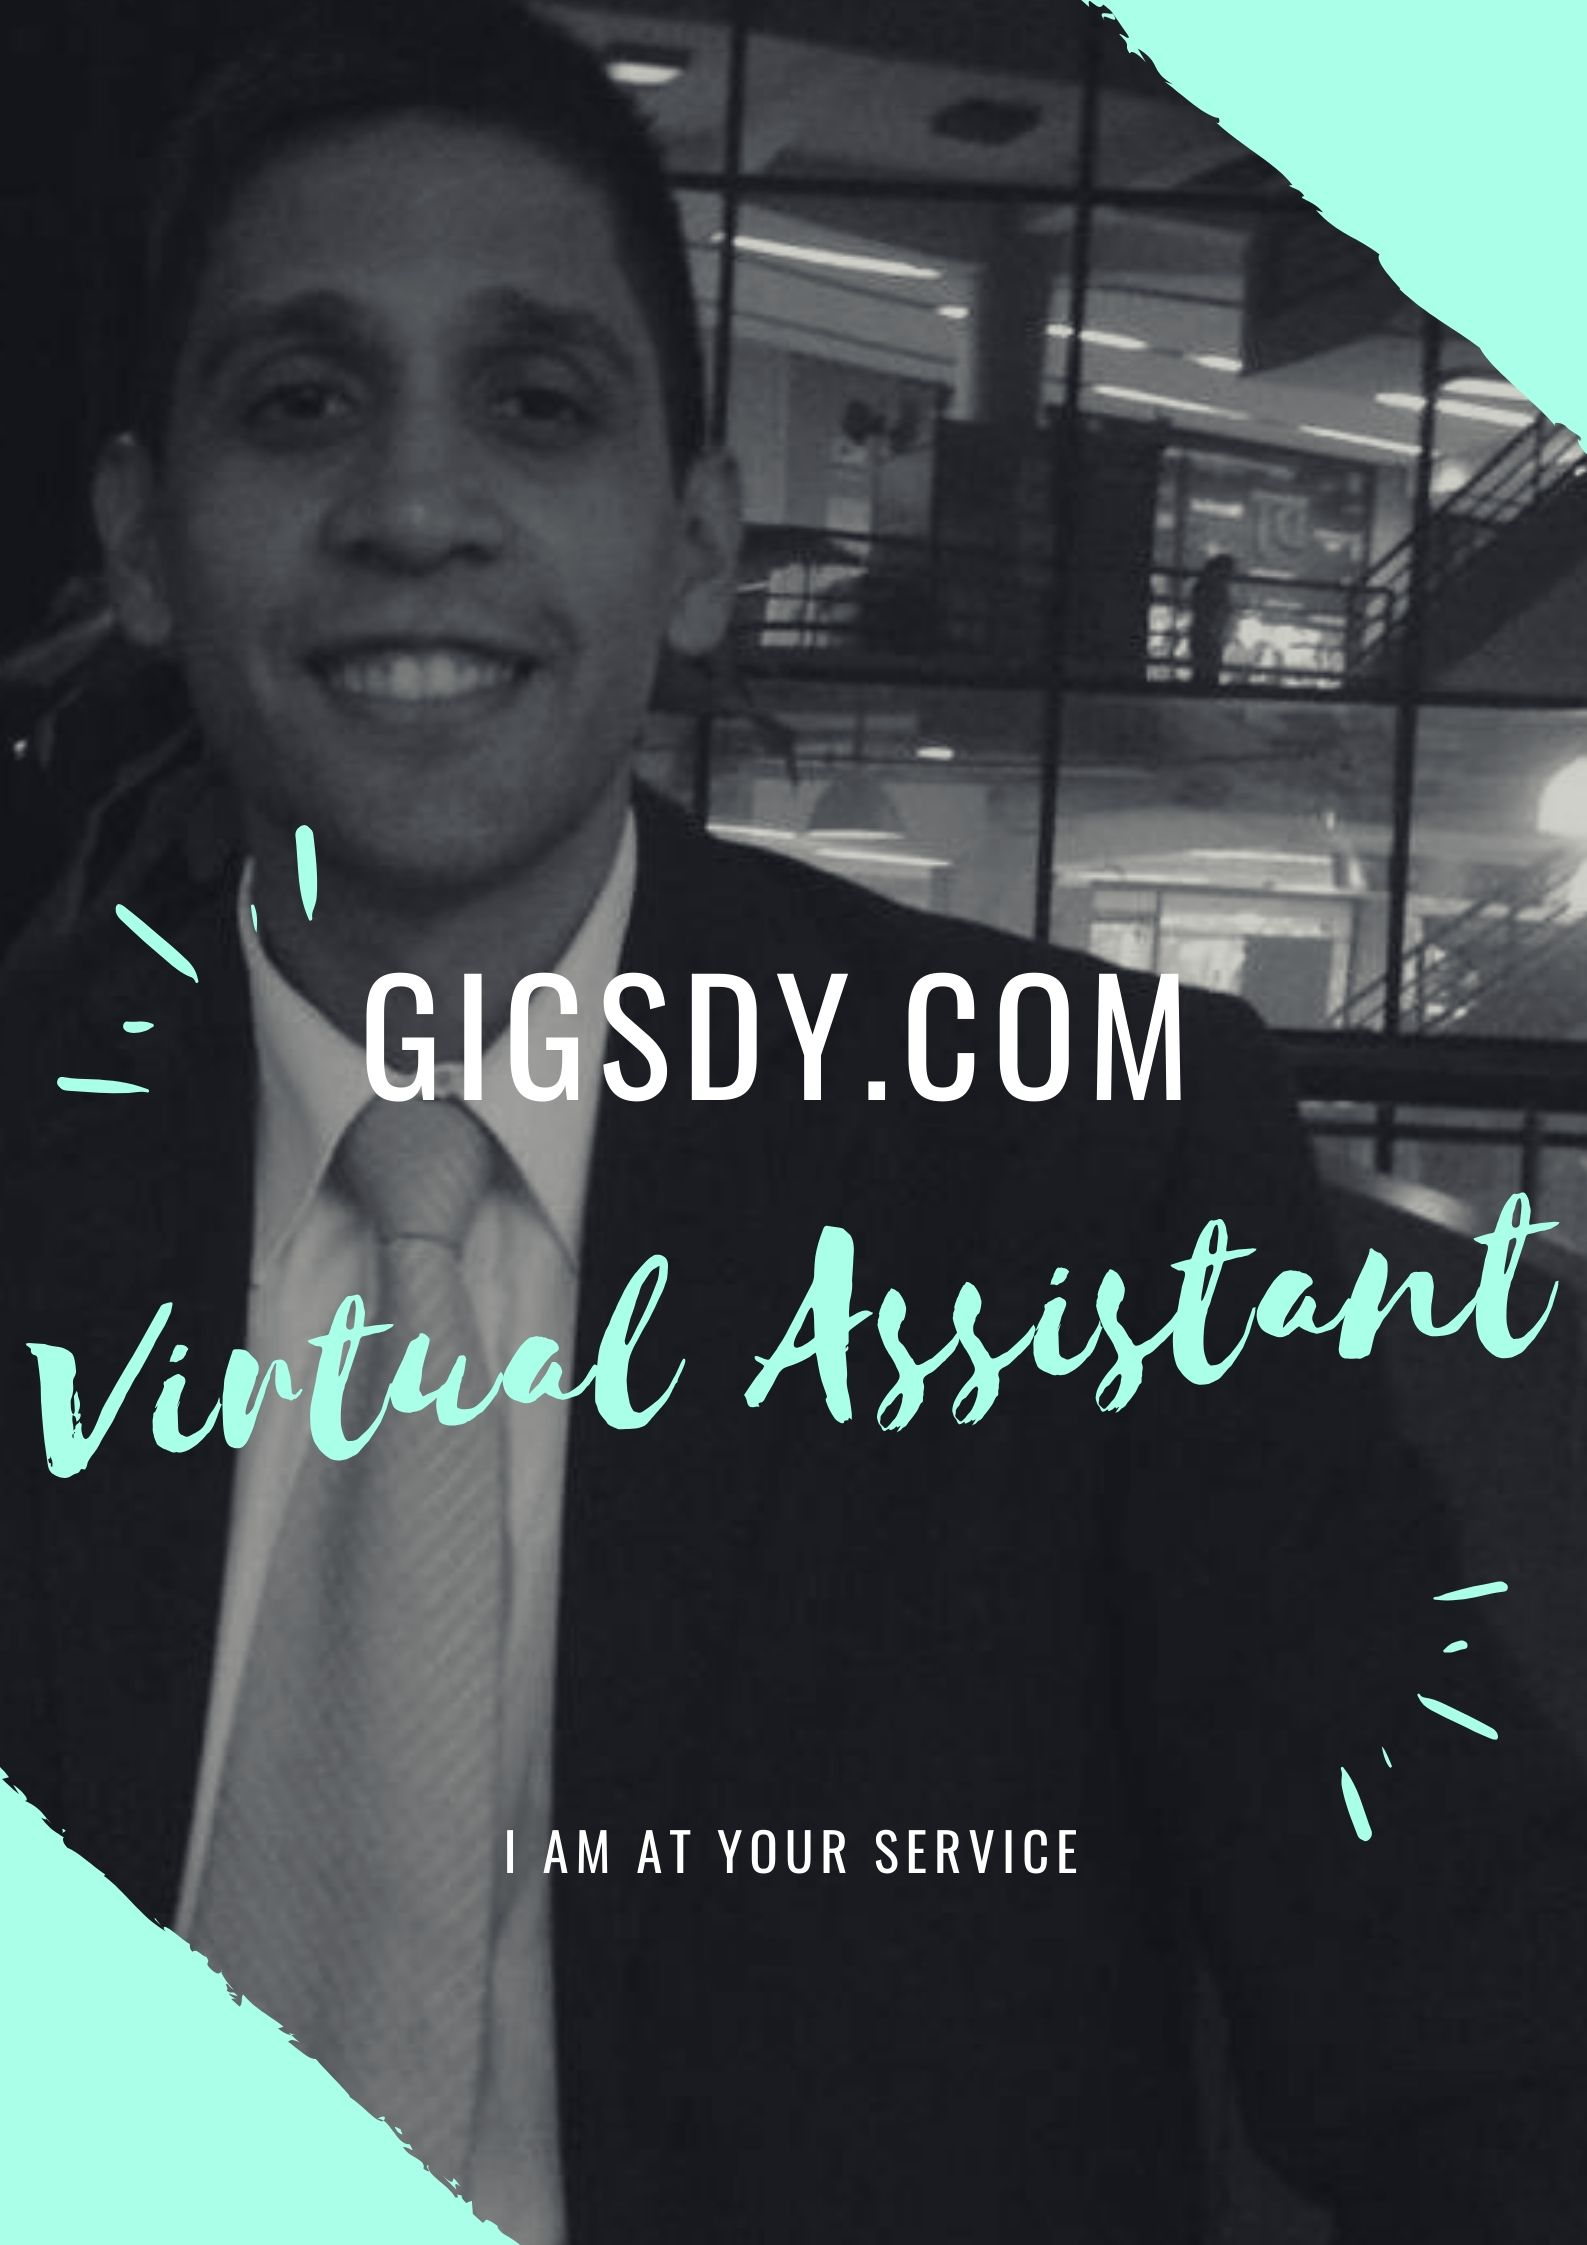 I will be your virtual assistant in 2020 with images